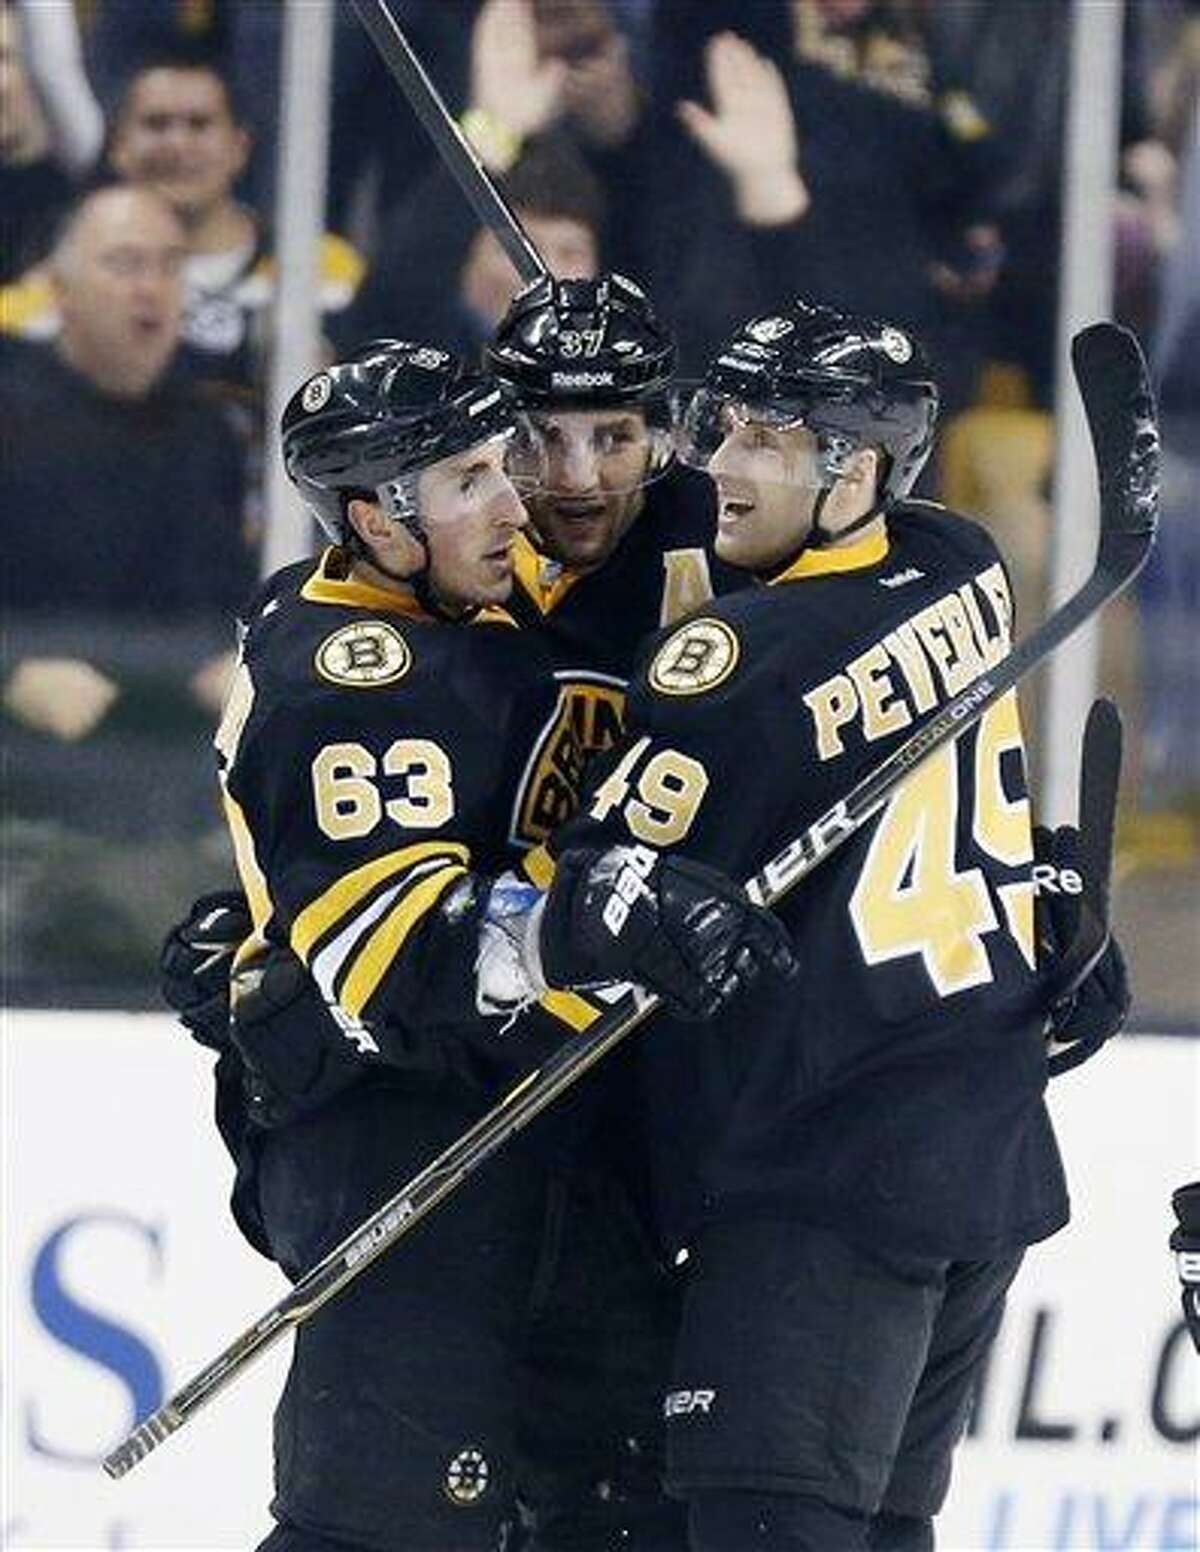 Boston Bruins' Brad Marchand (63) celebrates his go-ahead goal with teammates Patrice Bergeron (37) and Rich Peverley (49) during the third period of an NHL hockey game against the Tampa Bay Lightning in Boston, Saturday, March, 2, 2013. The Bruins won 3-2. (AP Photo/Michael Dwyer)